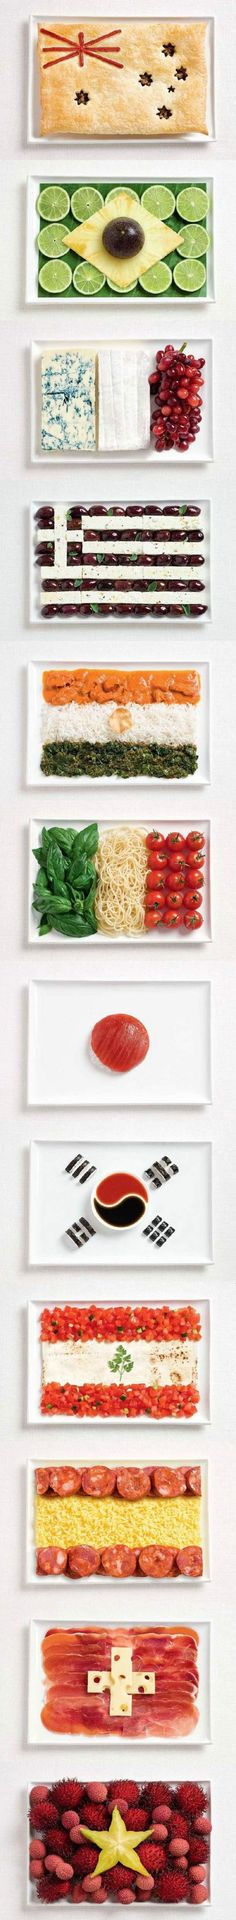 play with your food - flags